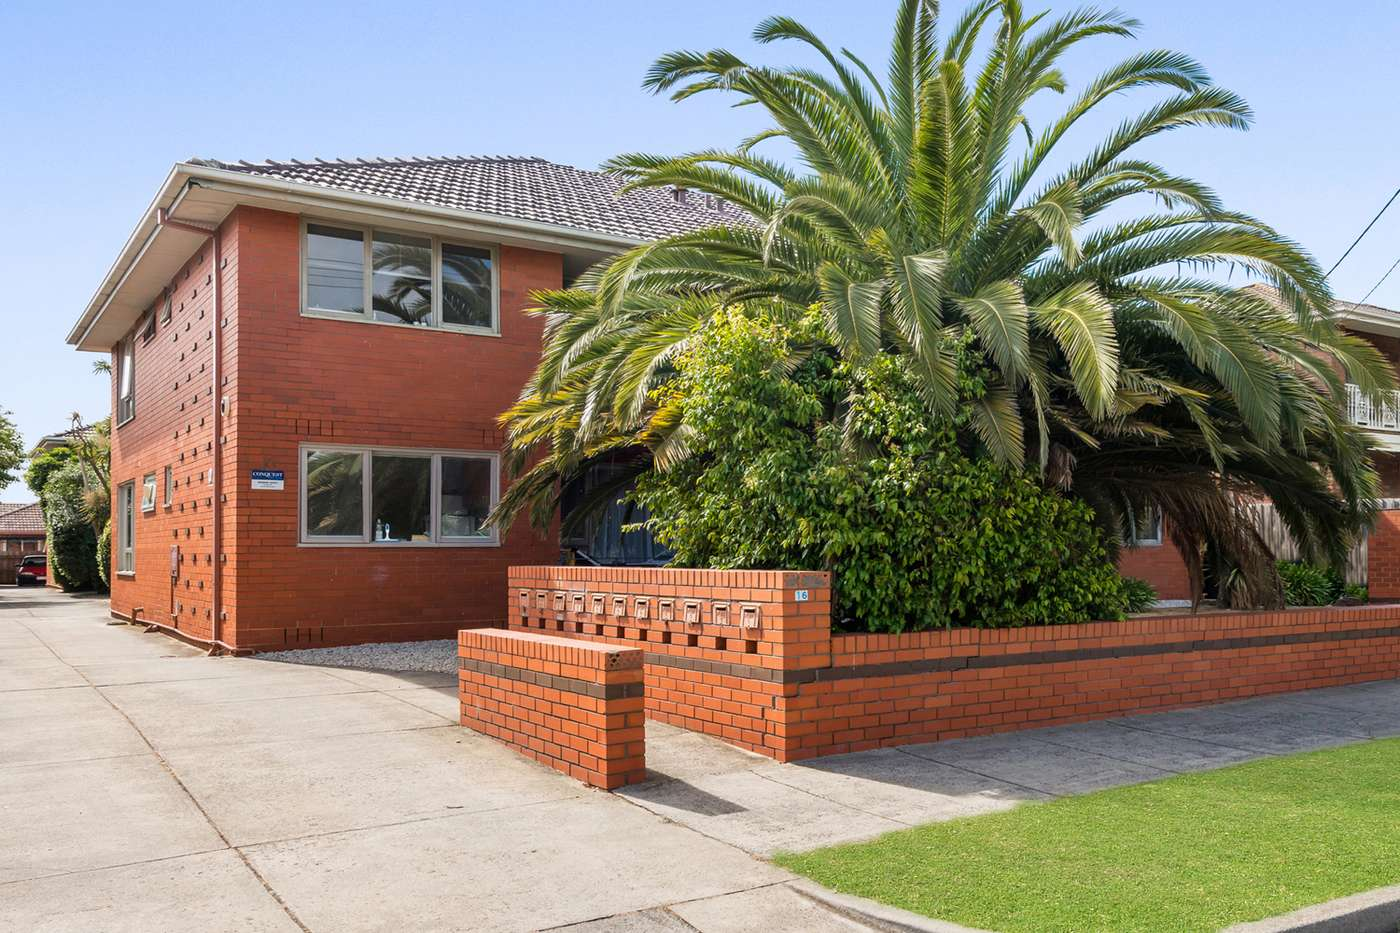 Main view of Homely apartment listing, 6/16 Royal  Avenue, Glen Huntly, VIC 3163